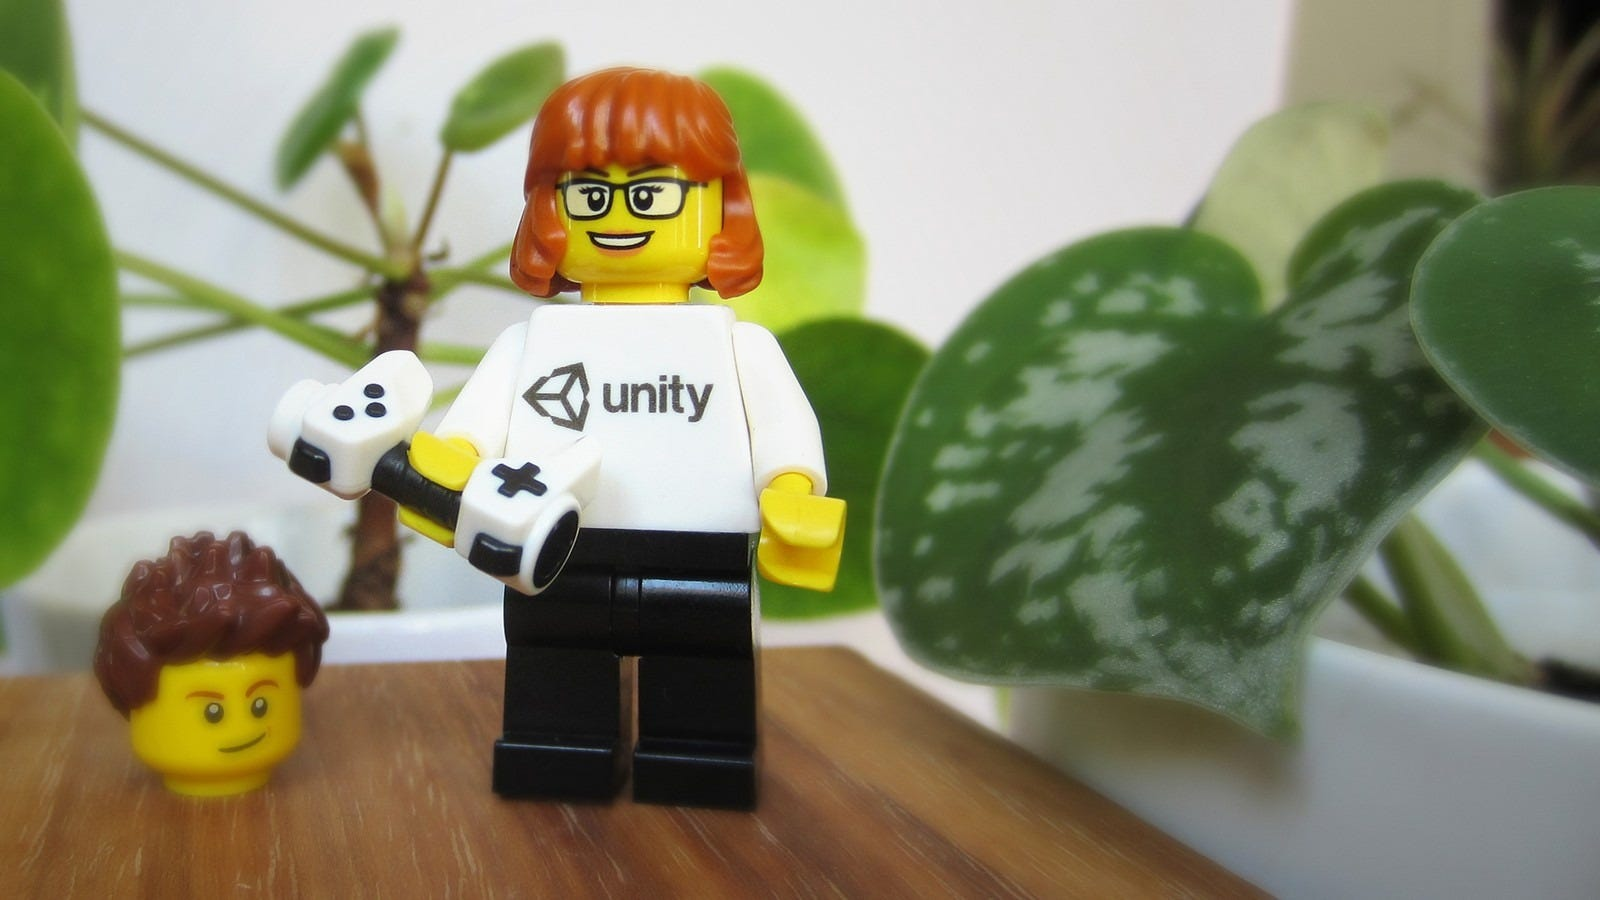 A custom LEGO minifig wearing a Unity-branded shirt.